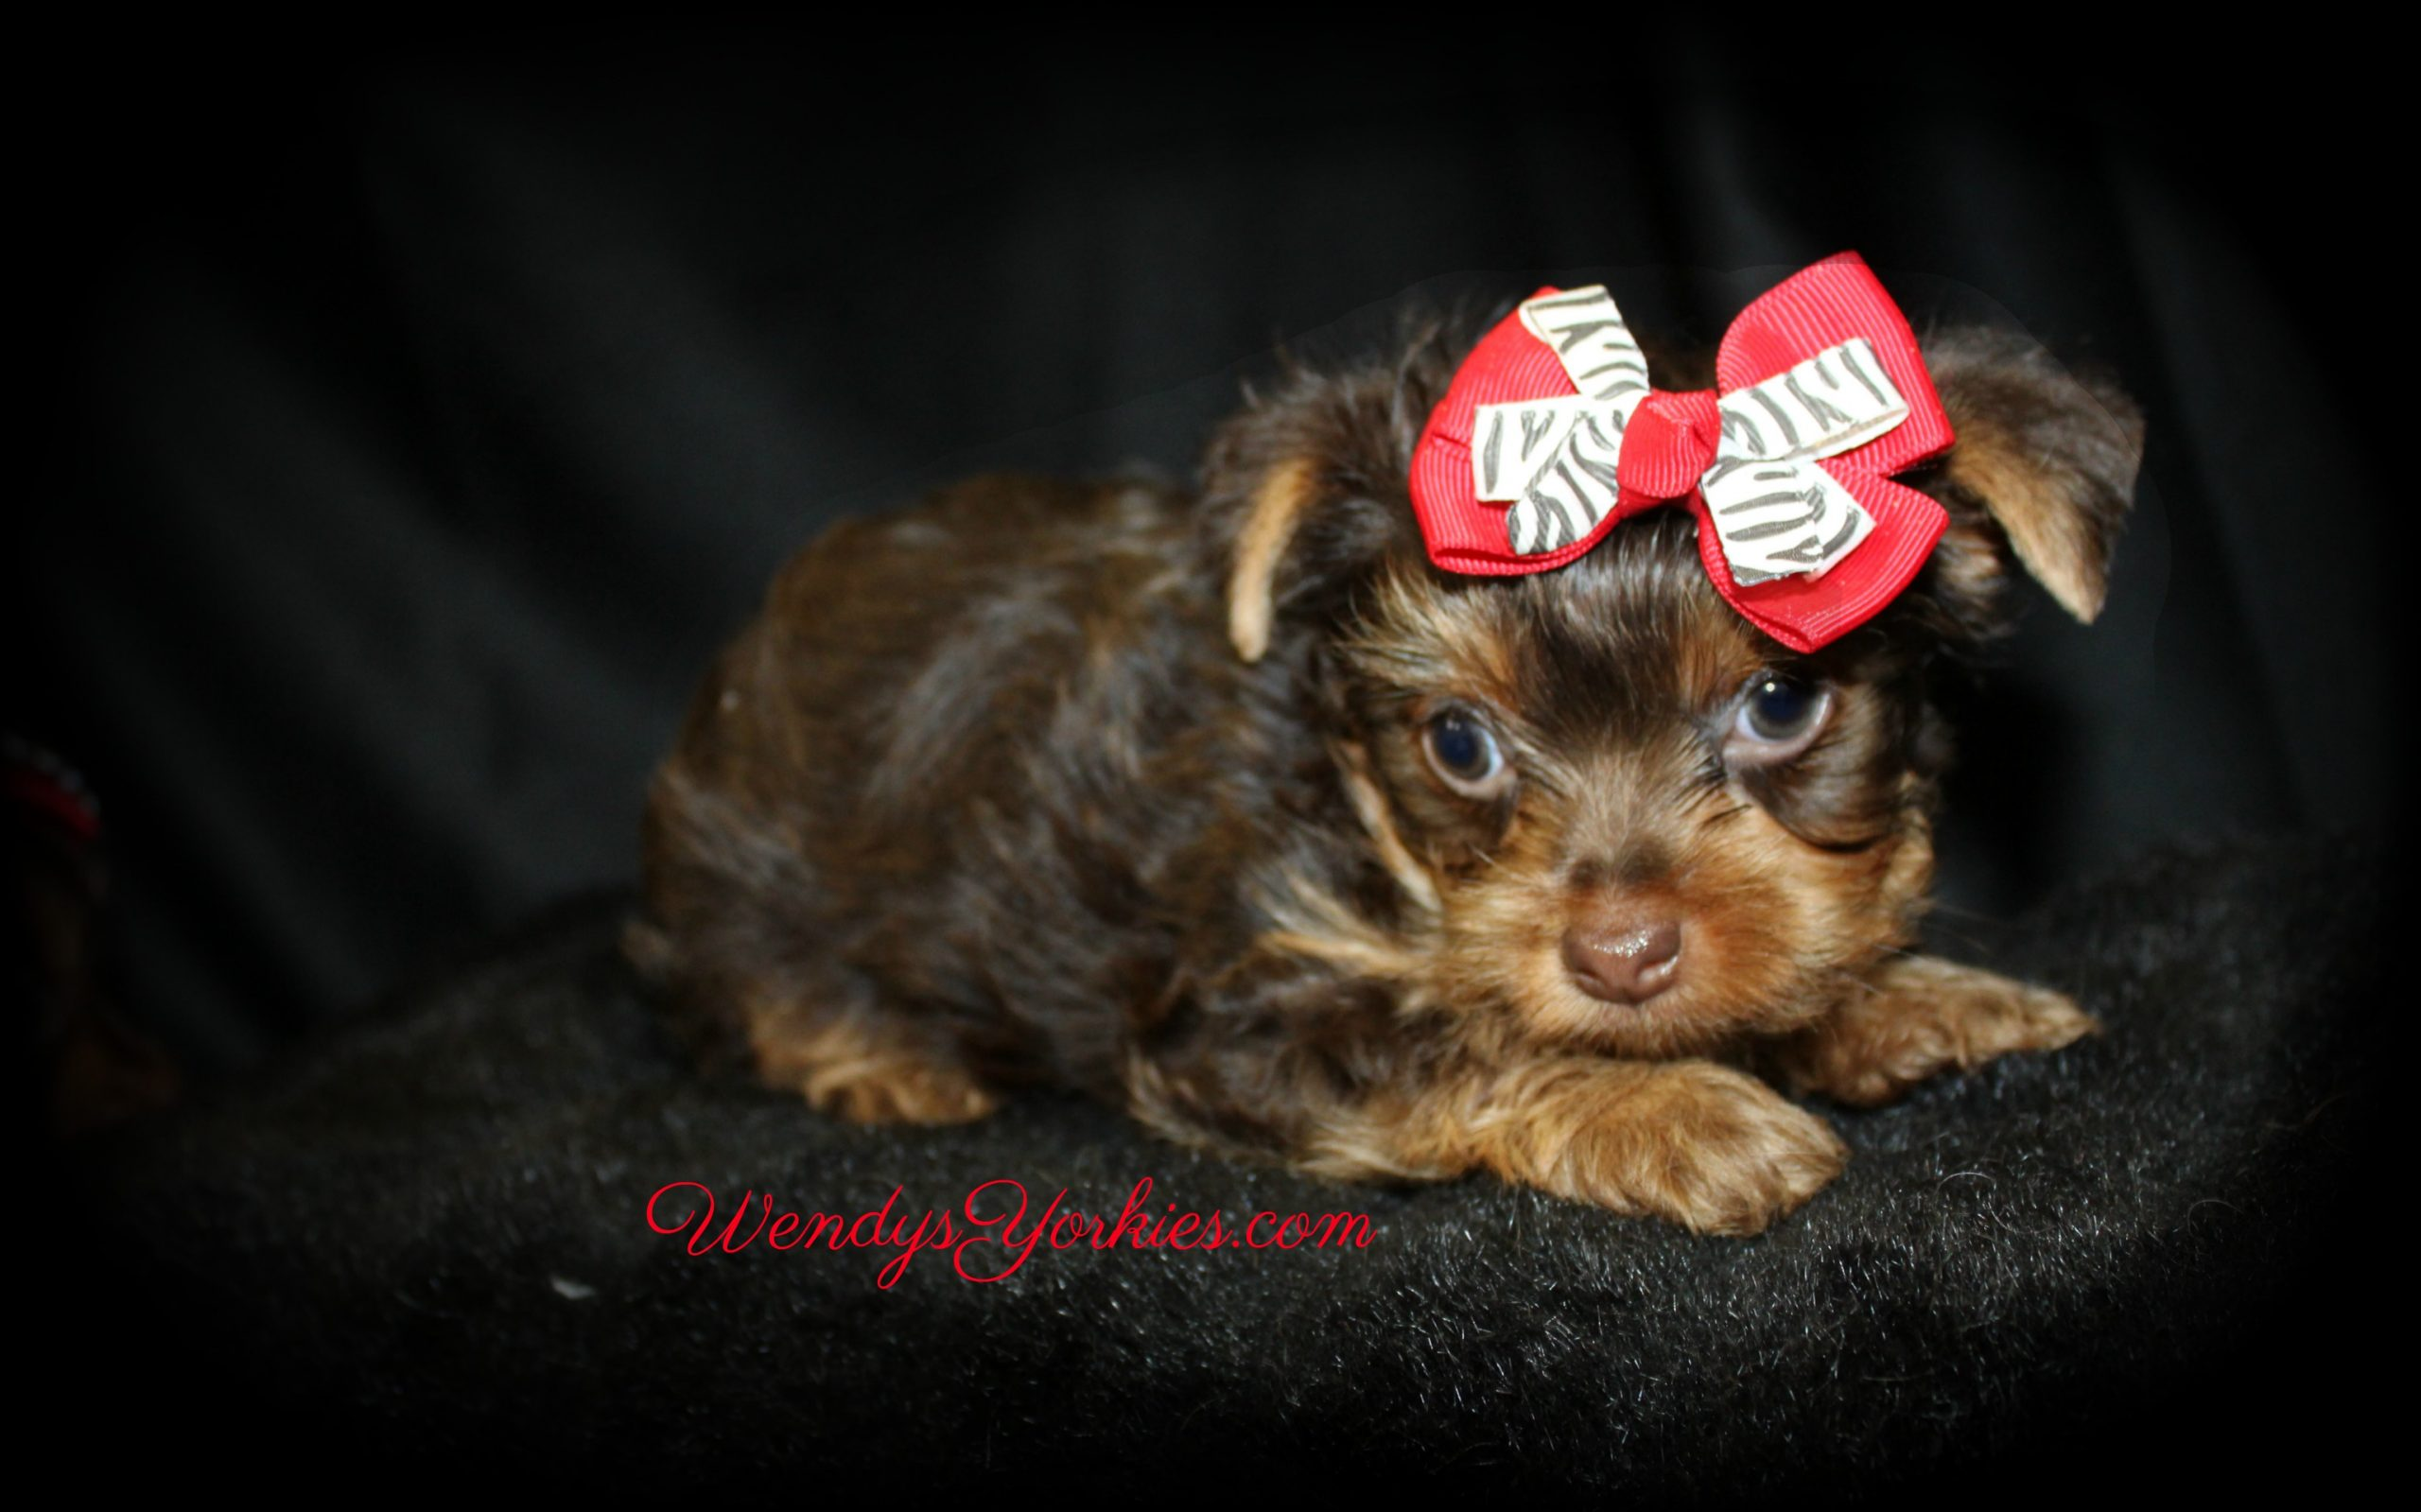 Teacup Chocolate Yorkie puppy for sale in Texas, Yorkie puppies, Kimber, Chocolate Yorkie puppy for sale, Kimber, WendysYorkies.com